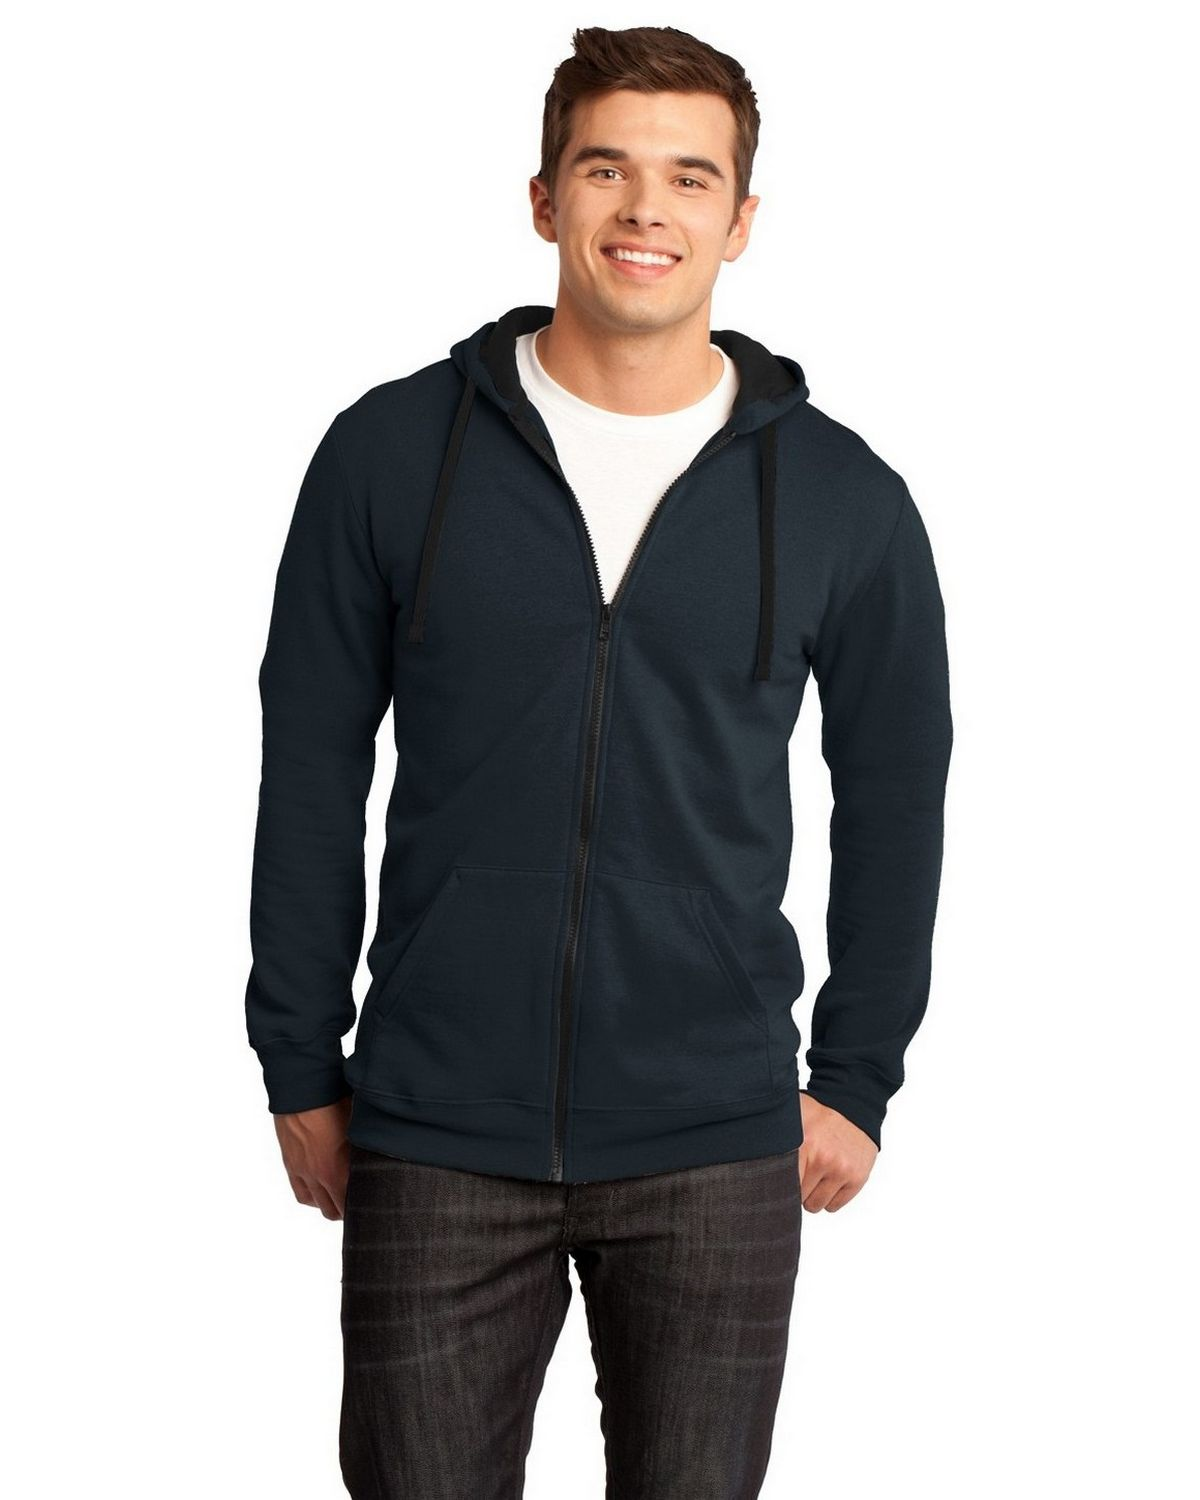 District DT800 The Concert Fleece Hoodie - New Navy - M DT800